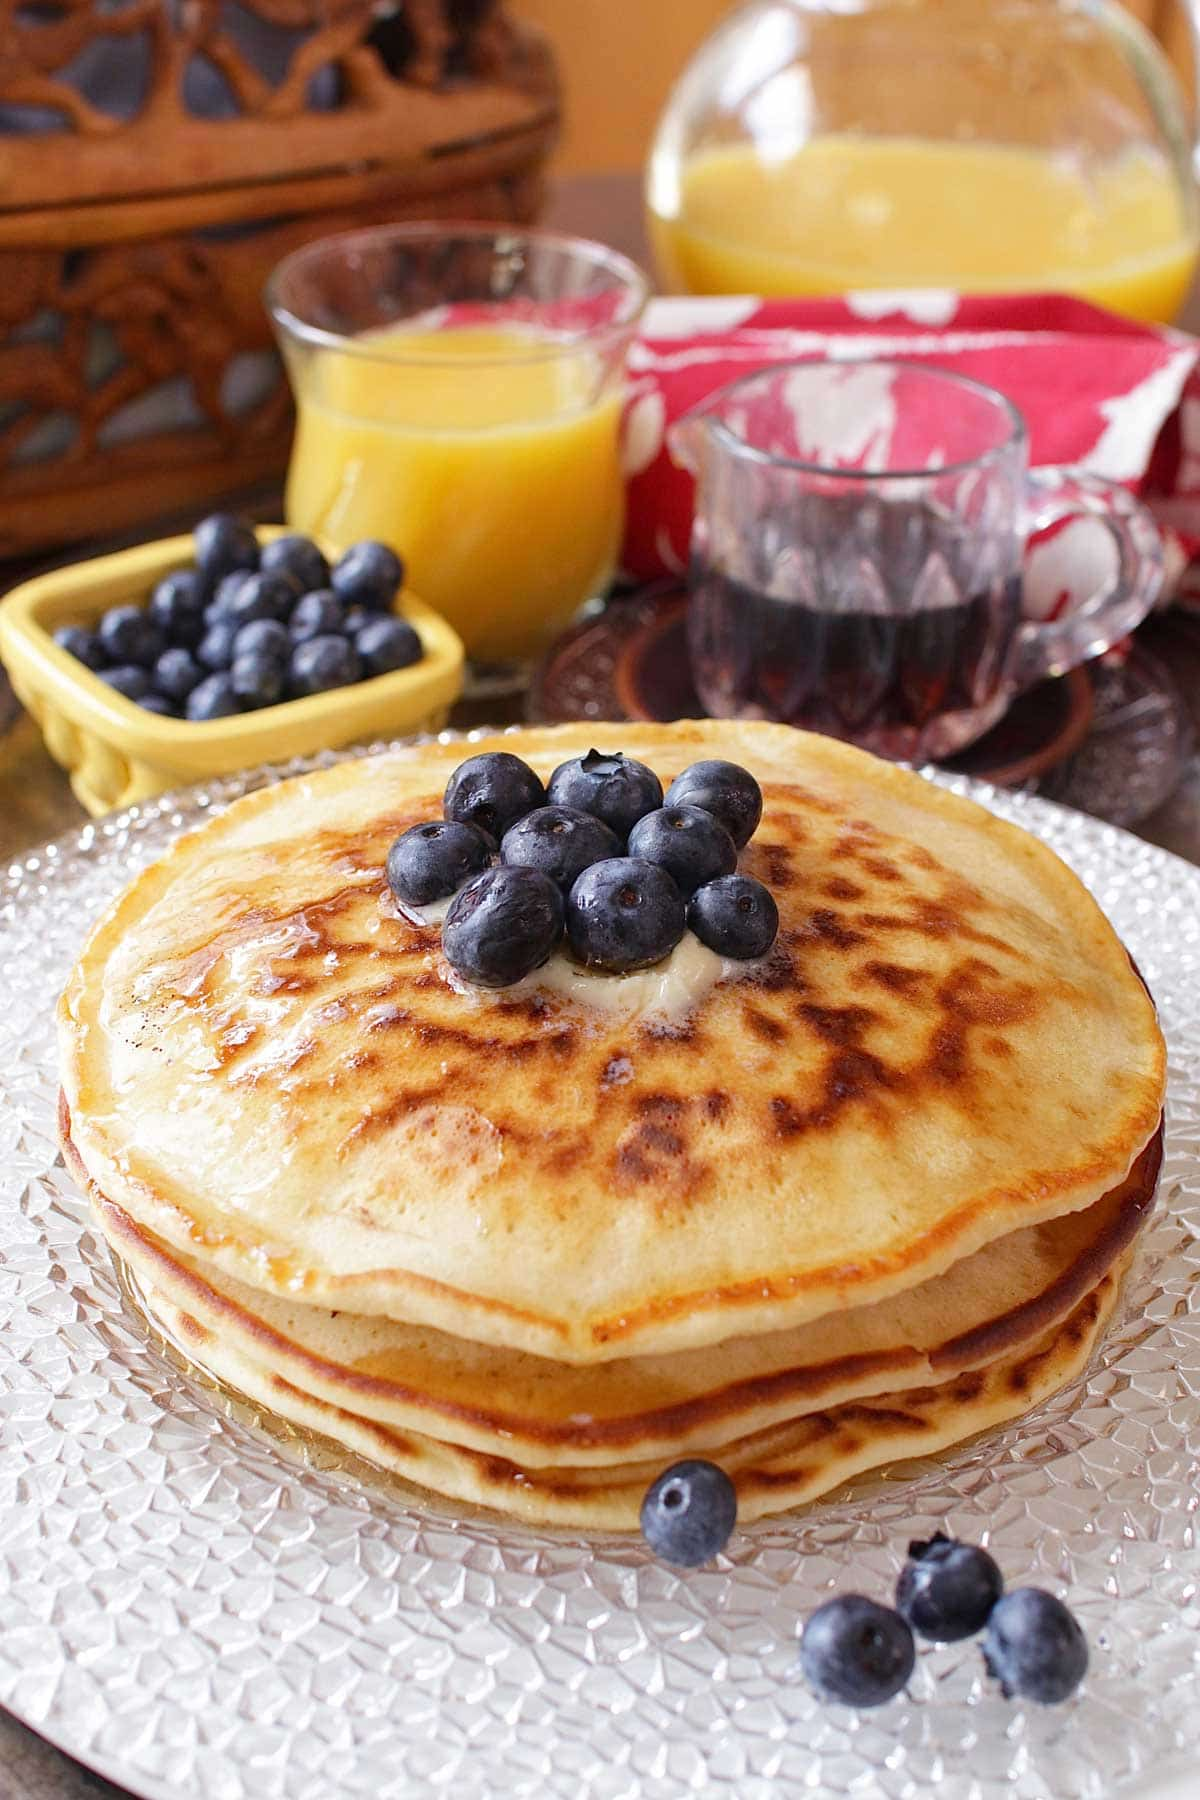 Three pancakes stacked on a plate and topped with melted butter and blueberries.